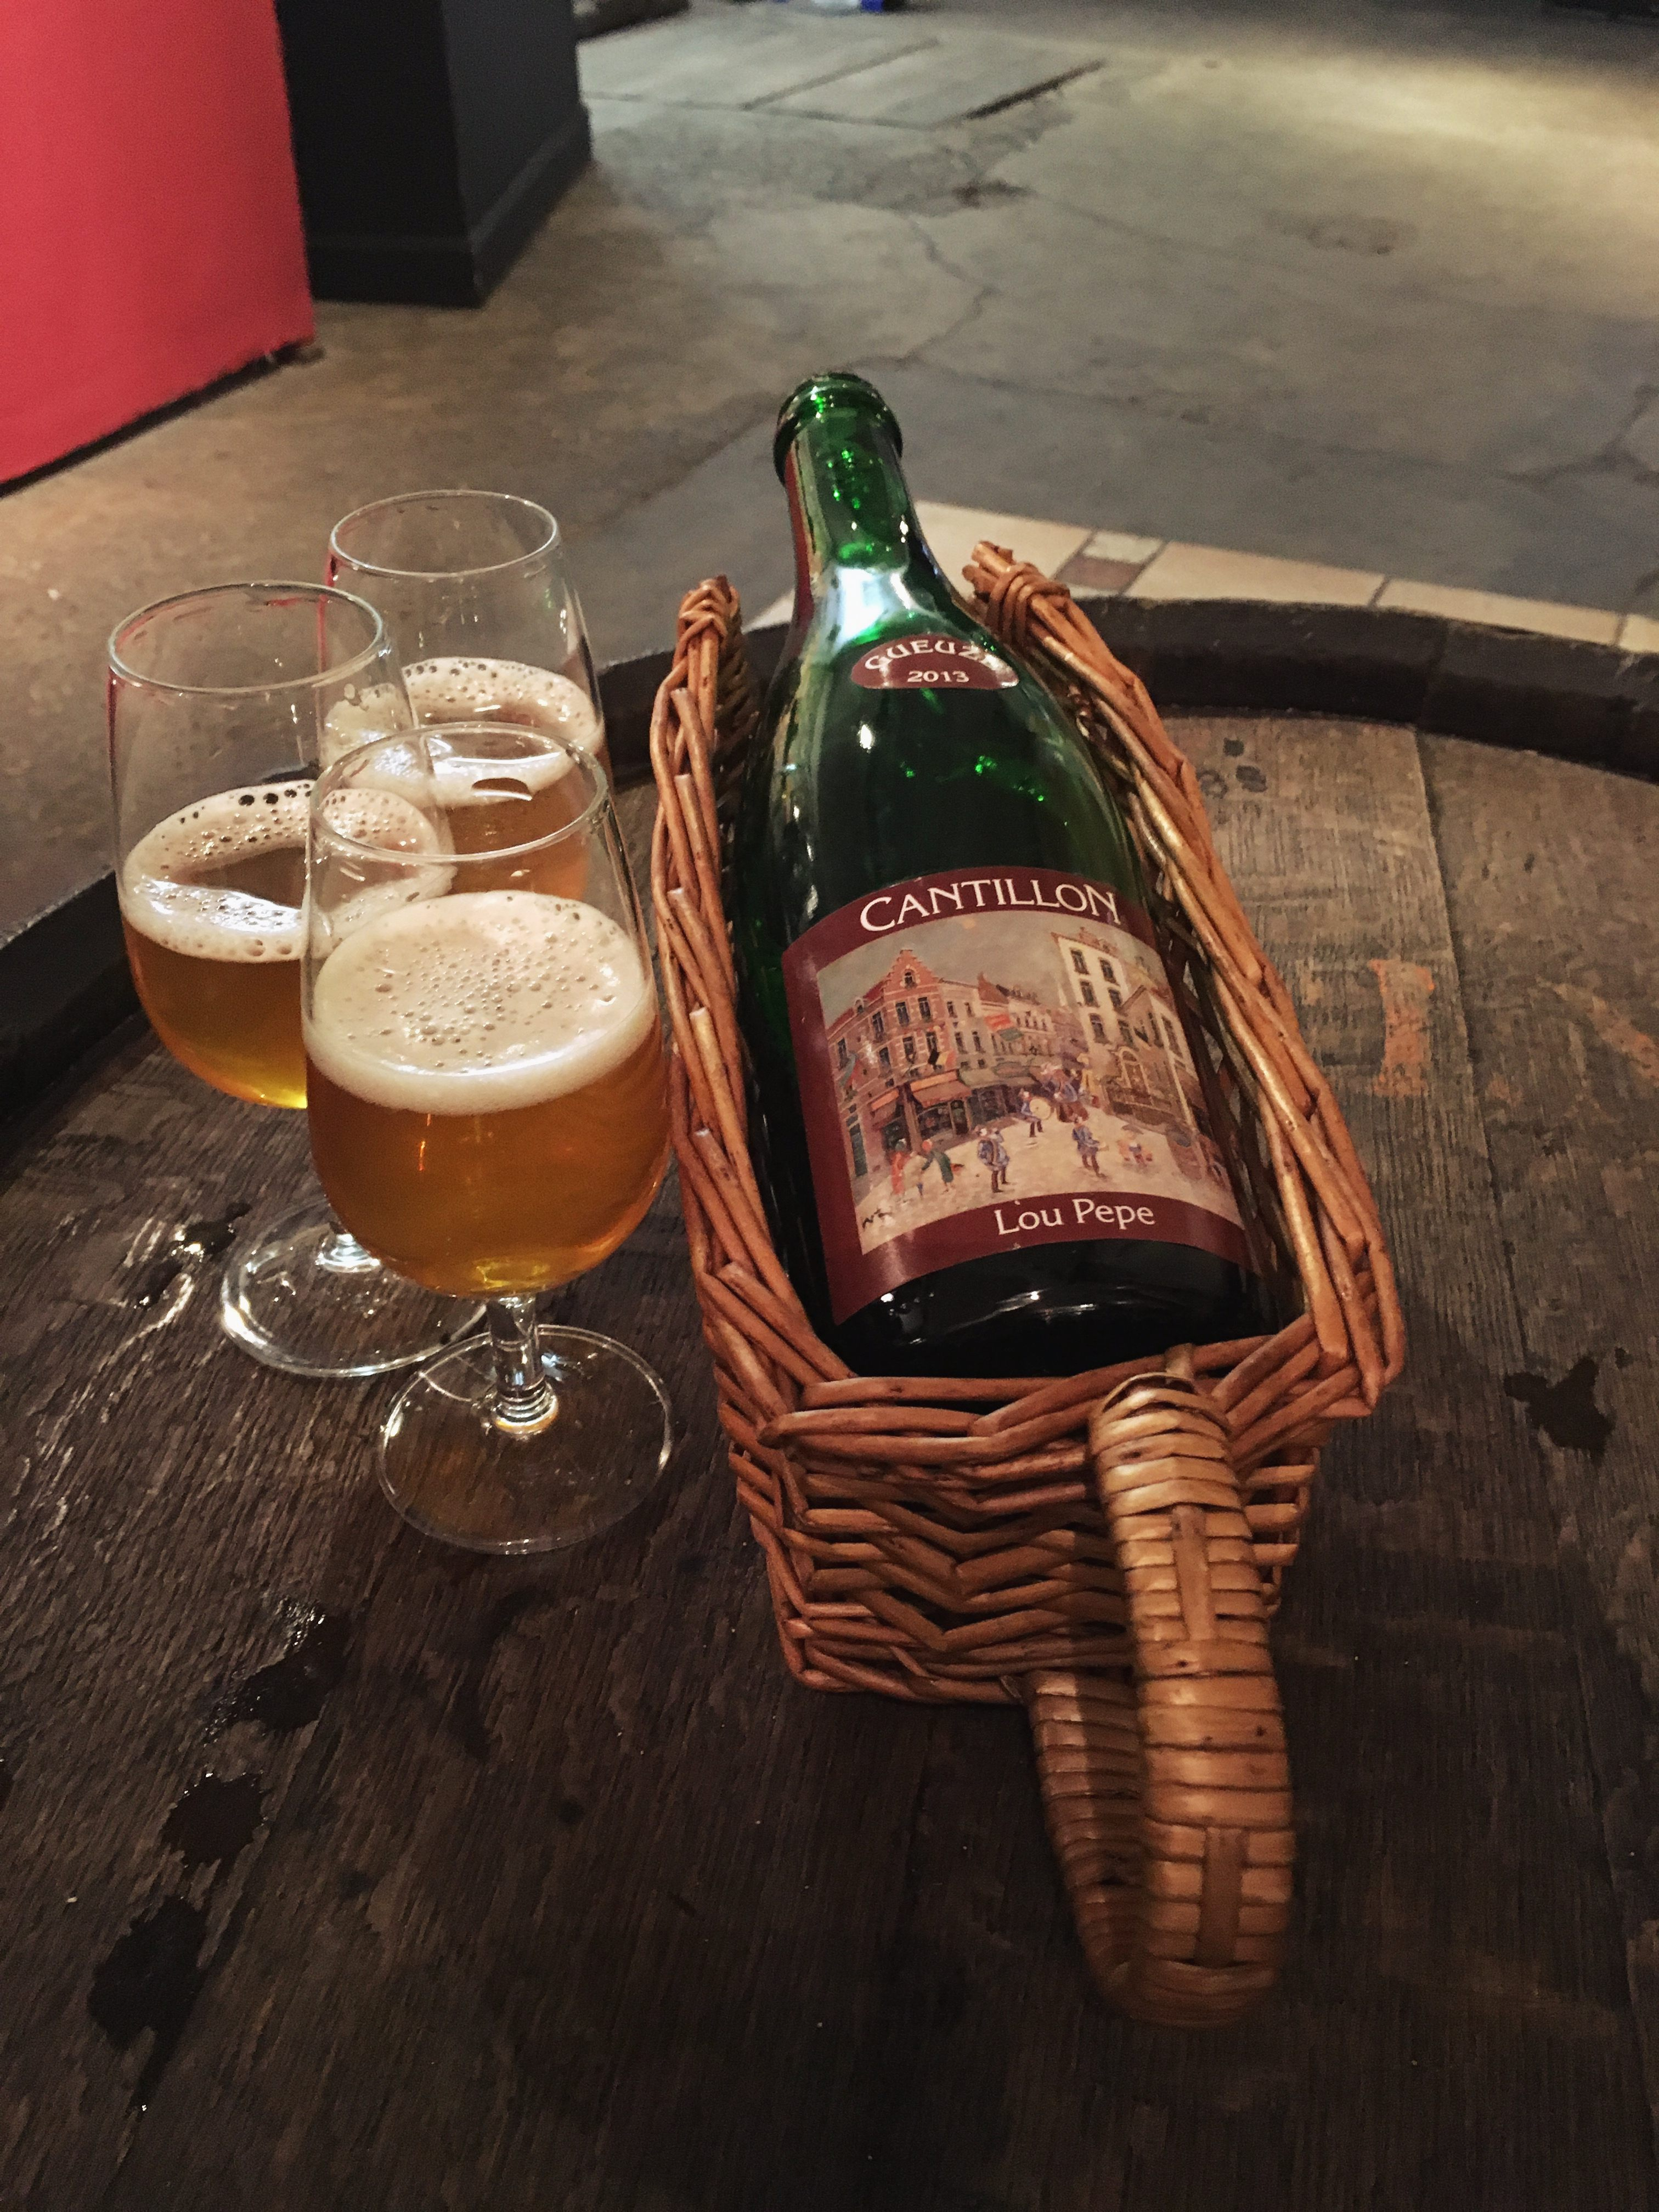 Lou Pepe Geuze bottle at Brasserie Cantillon